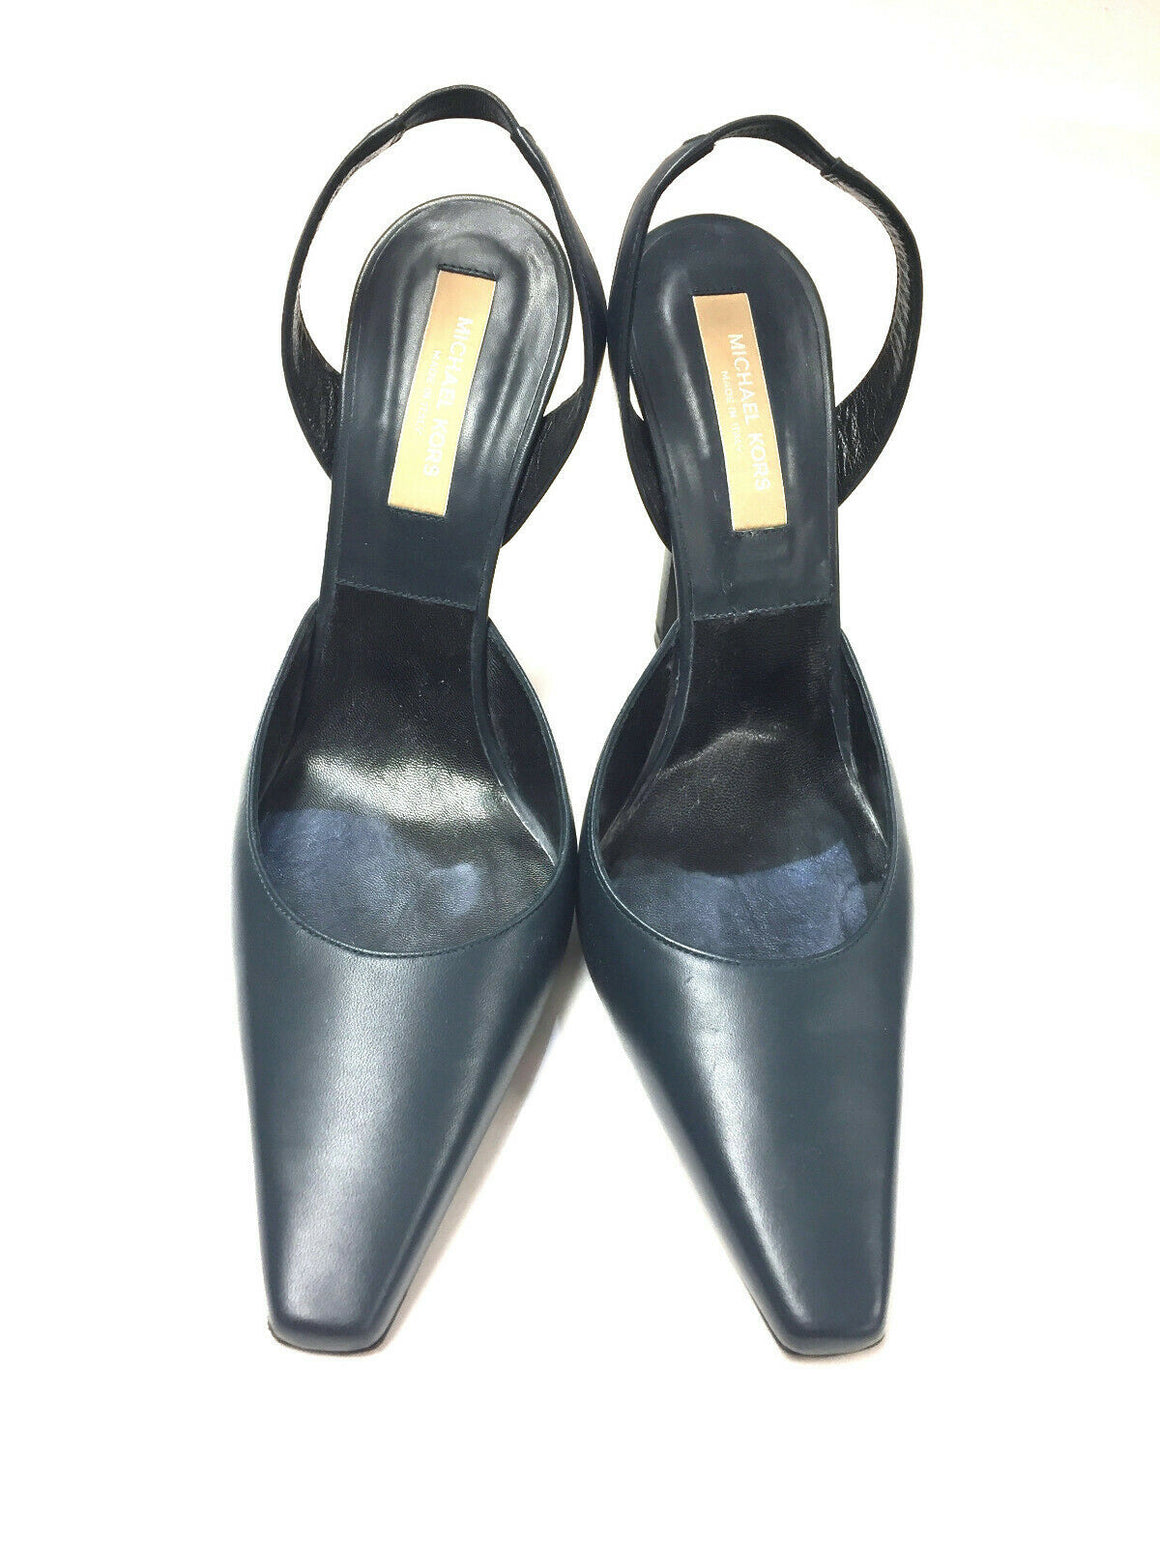 MICHAEL KORS Navy-Blue Leather Hi-Heel Slingbacks Pumps Size: EU39.5 / US9.5